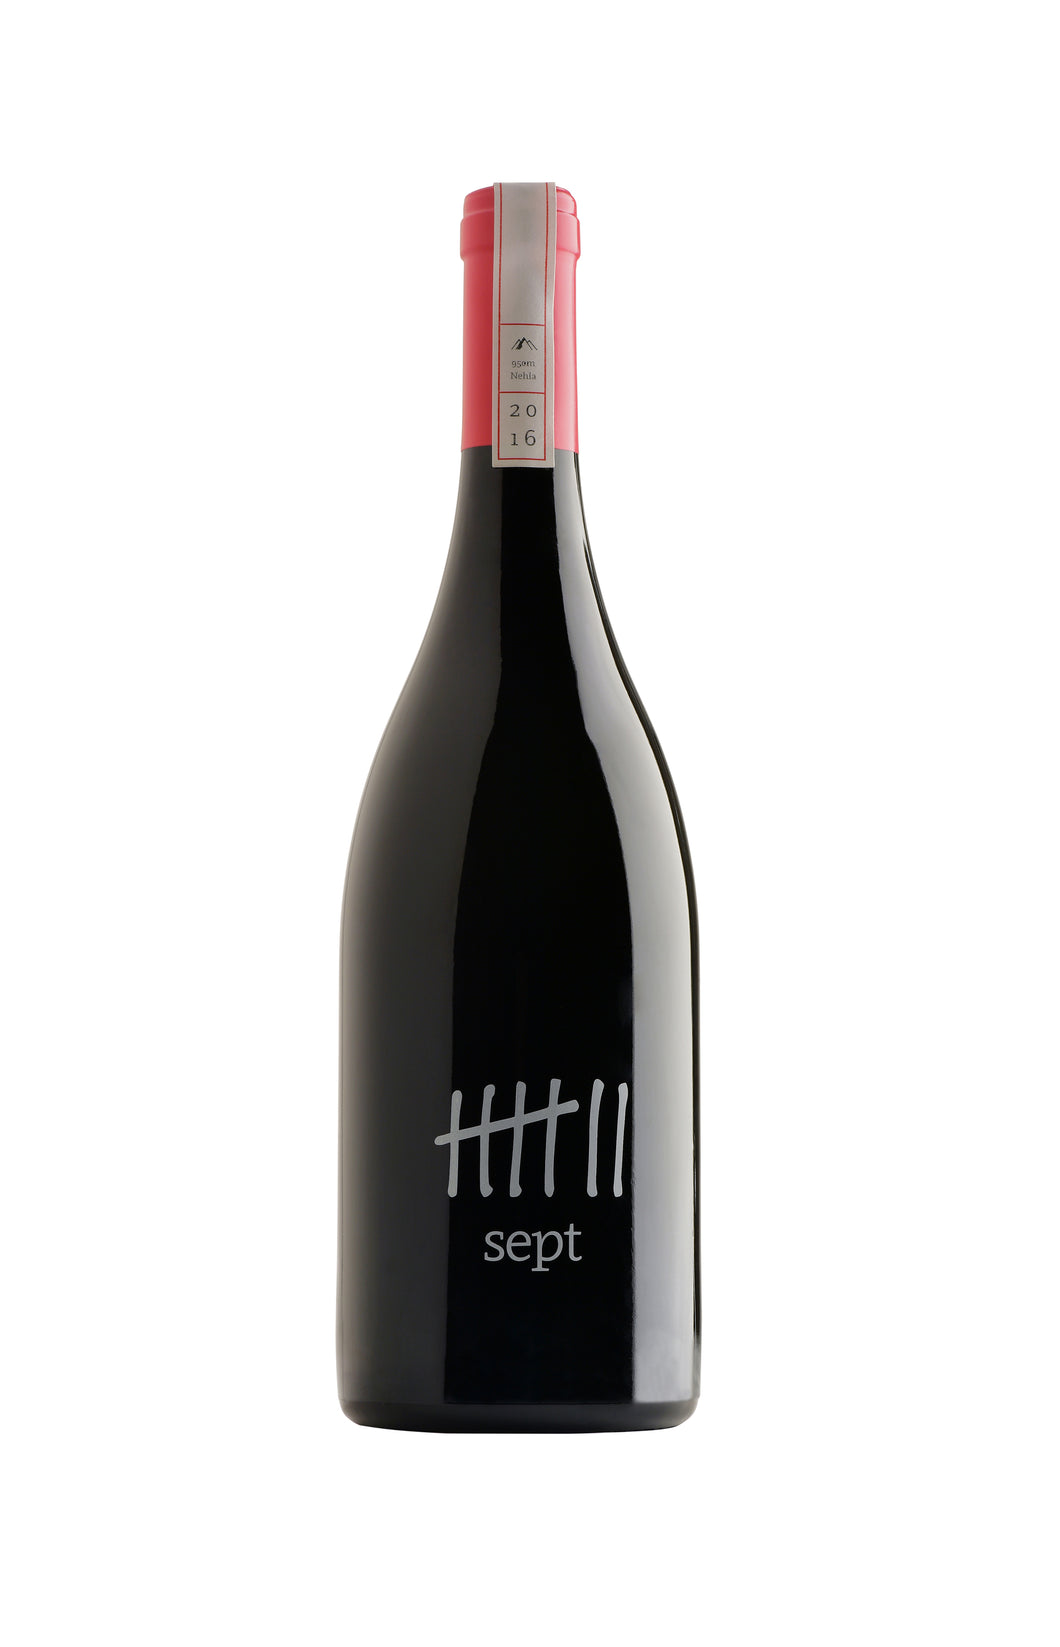 Sept Syrah de Nehla 2017 - 75cl